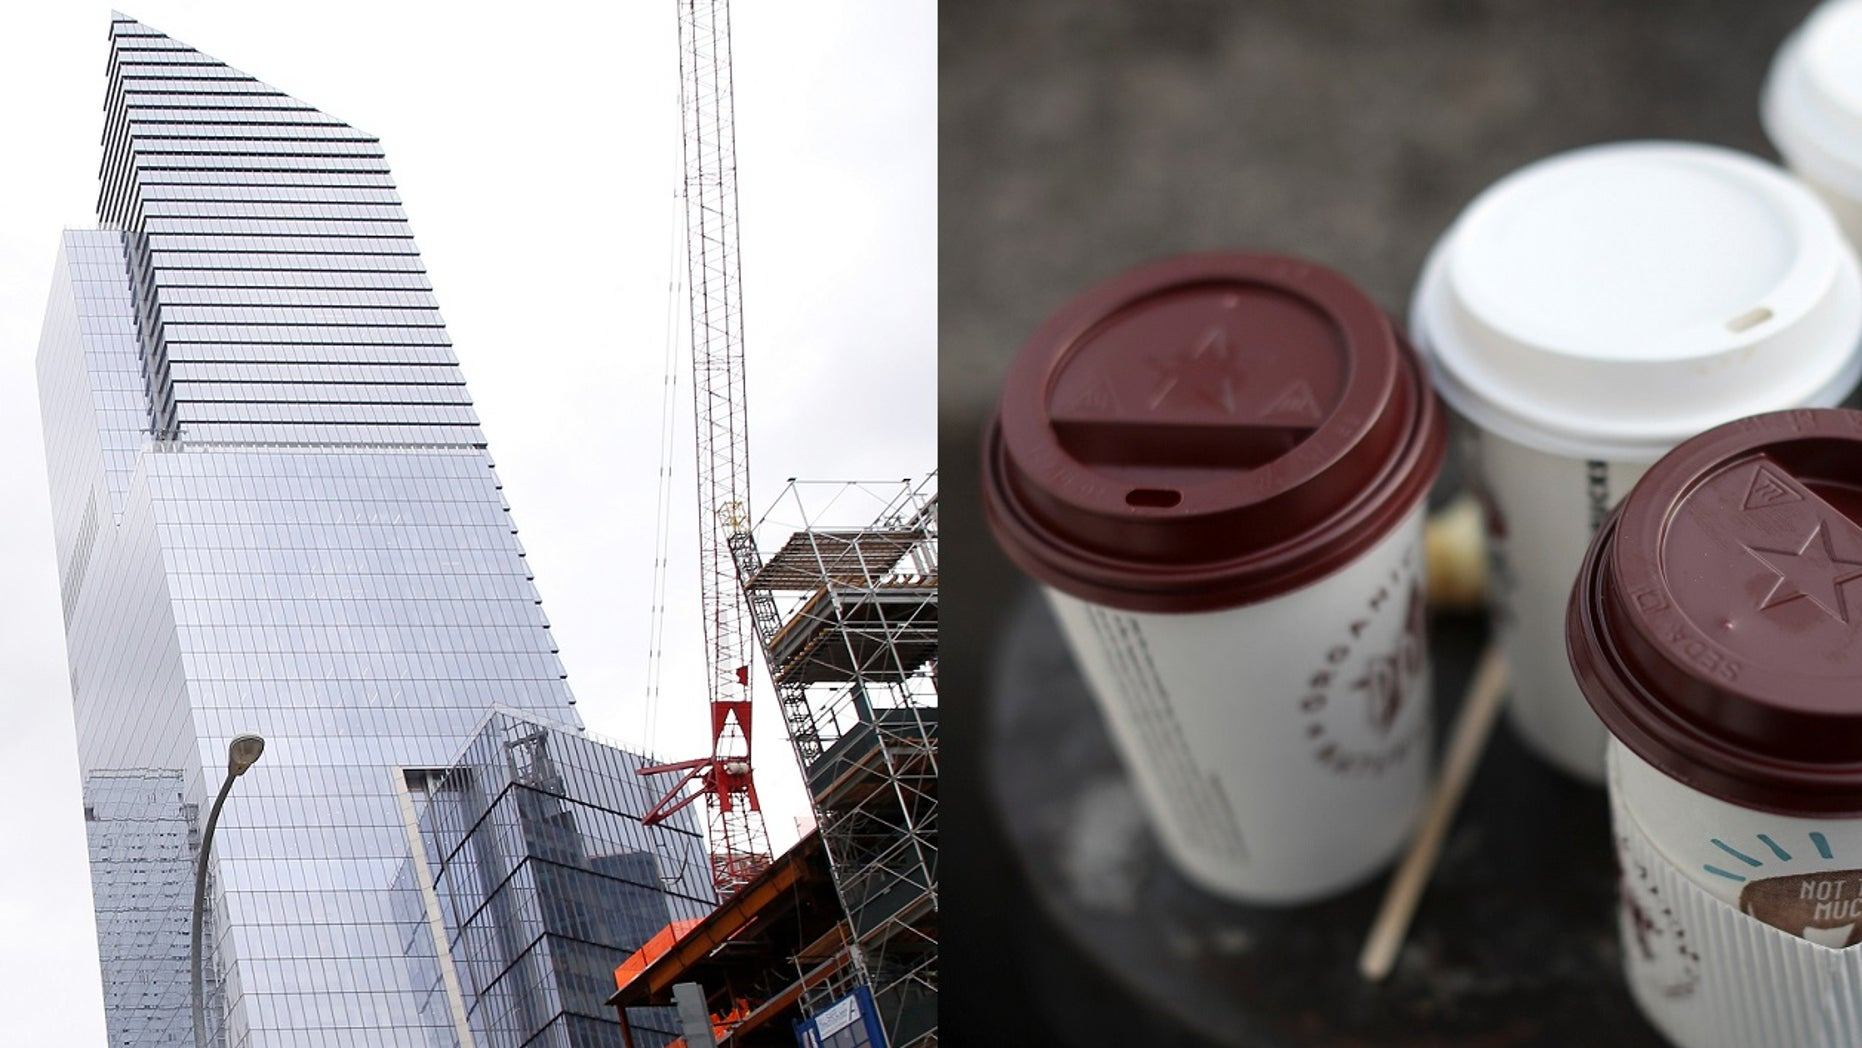 A lawsuit filed Monday by Hudson Yards Construction LLC alleged that union workers were paid more than $40 an hour to deliver coffee.